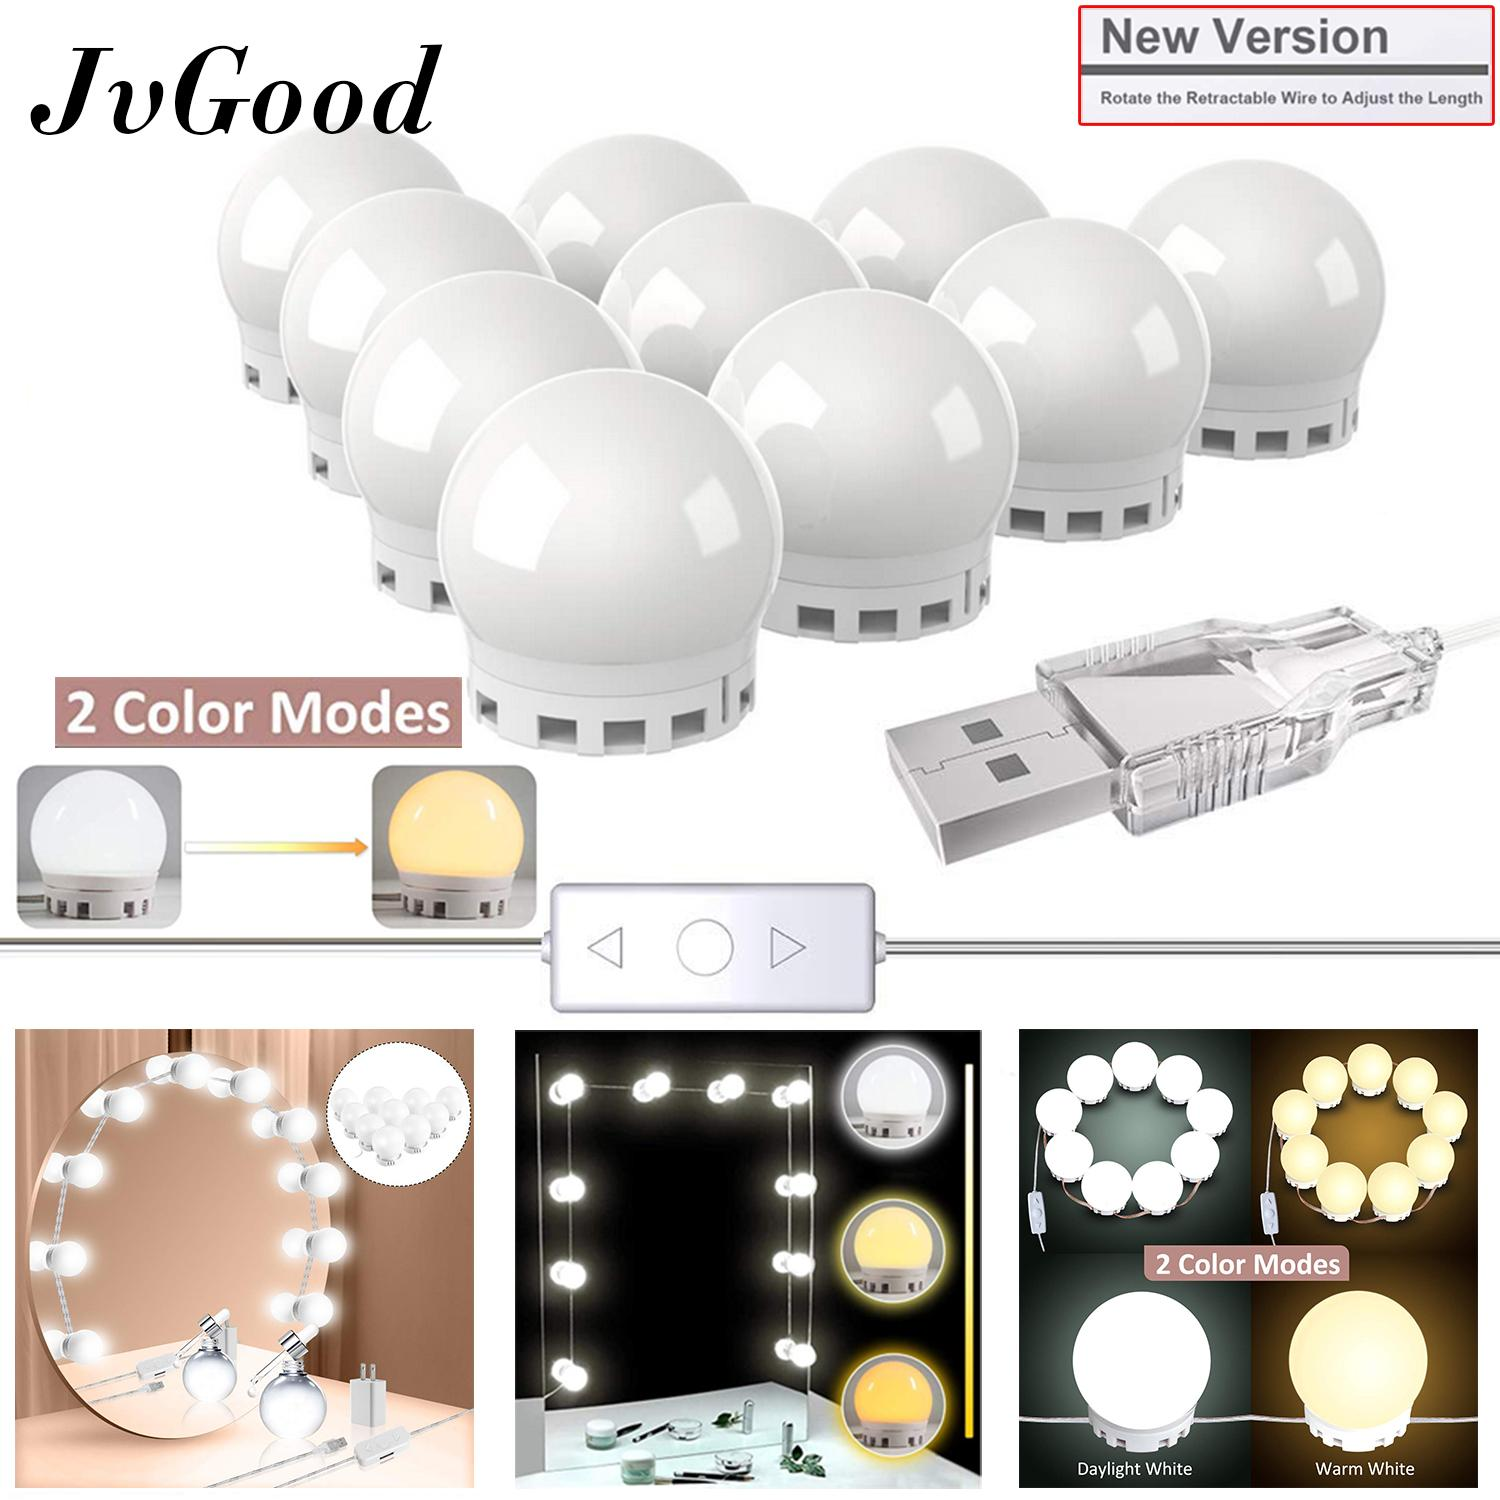 JvGood Mirror Lights Vanity Mirror Light Make Up Mirror LED Light Lamp Kit Makeup Mirror Light Hollywood Style Lighting Fixture Strip LED Bulb Mirror Light for Makeup Vanity Dressing Table (New Version) Philippines